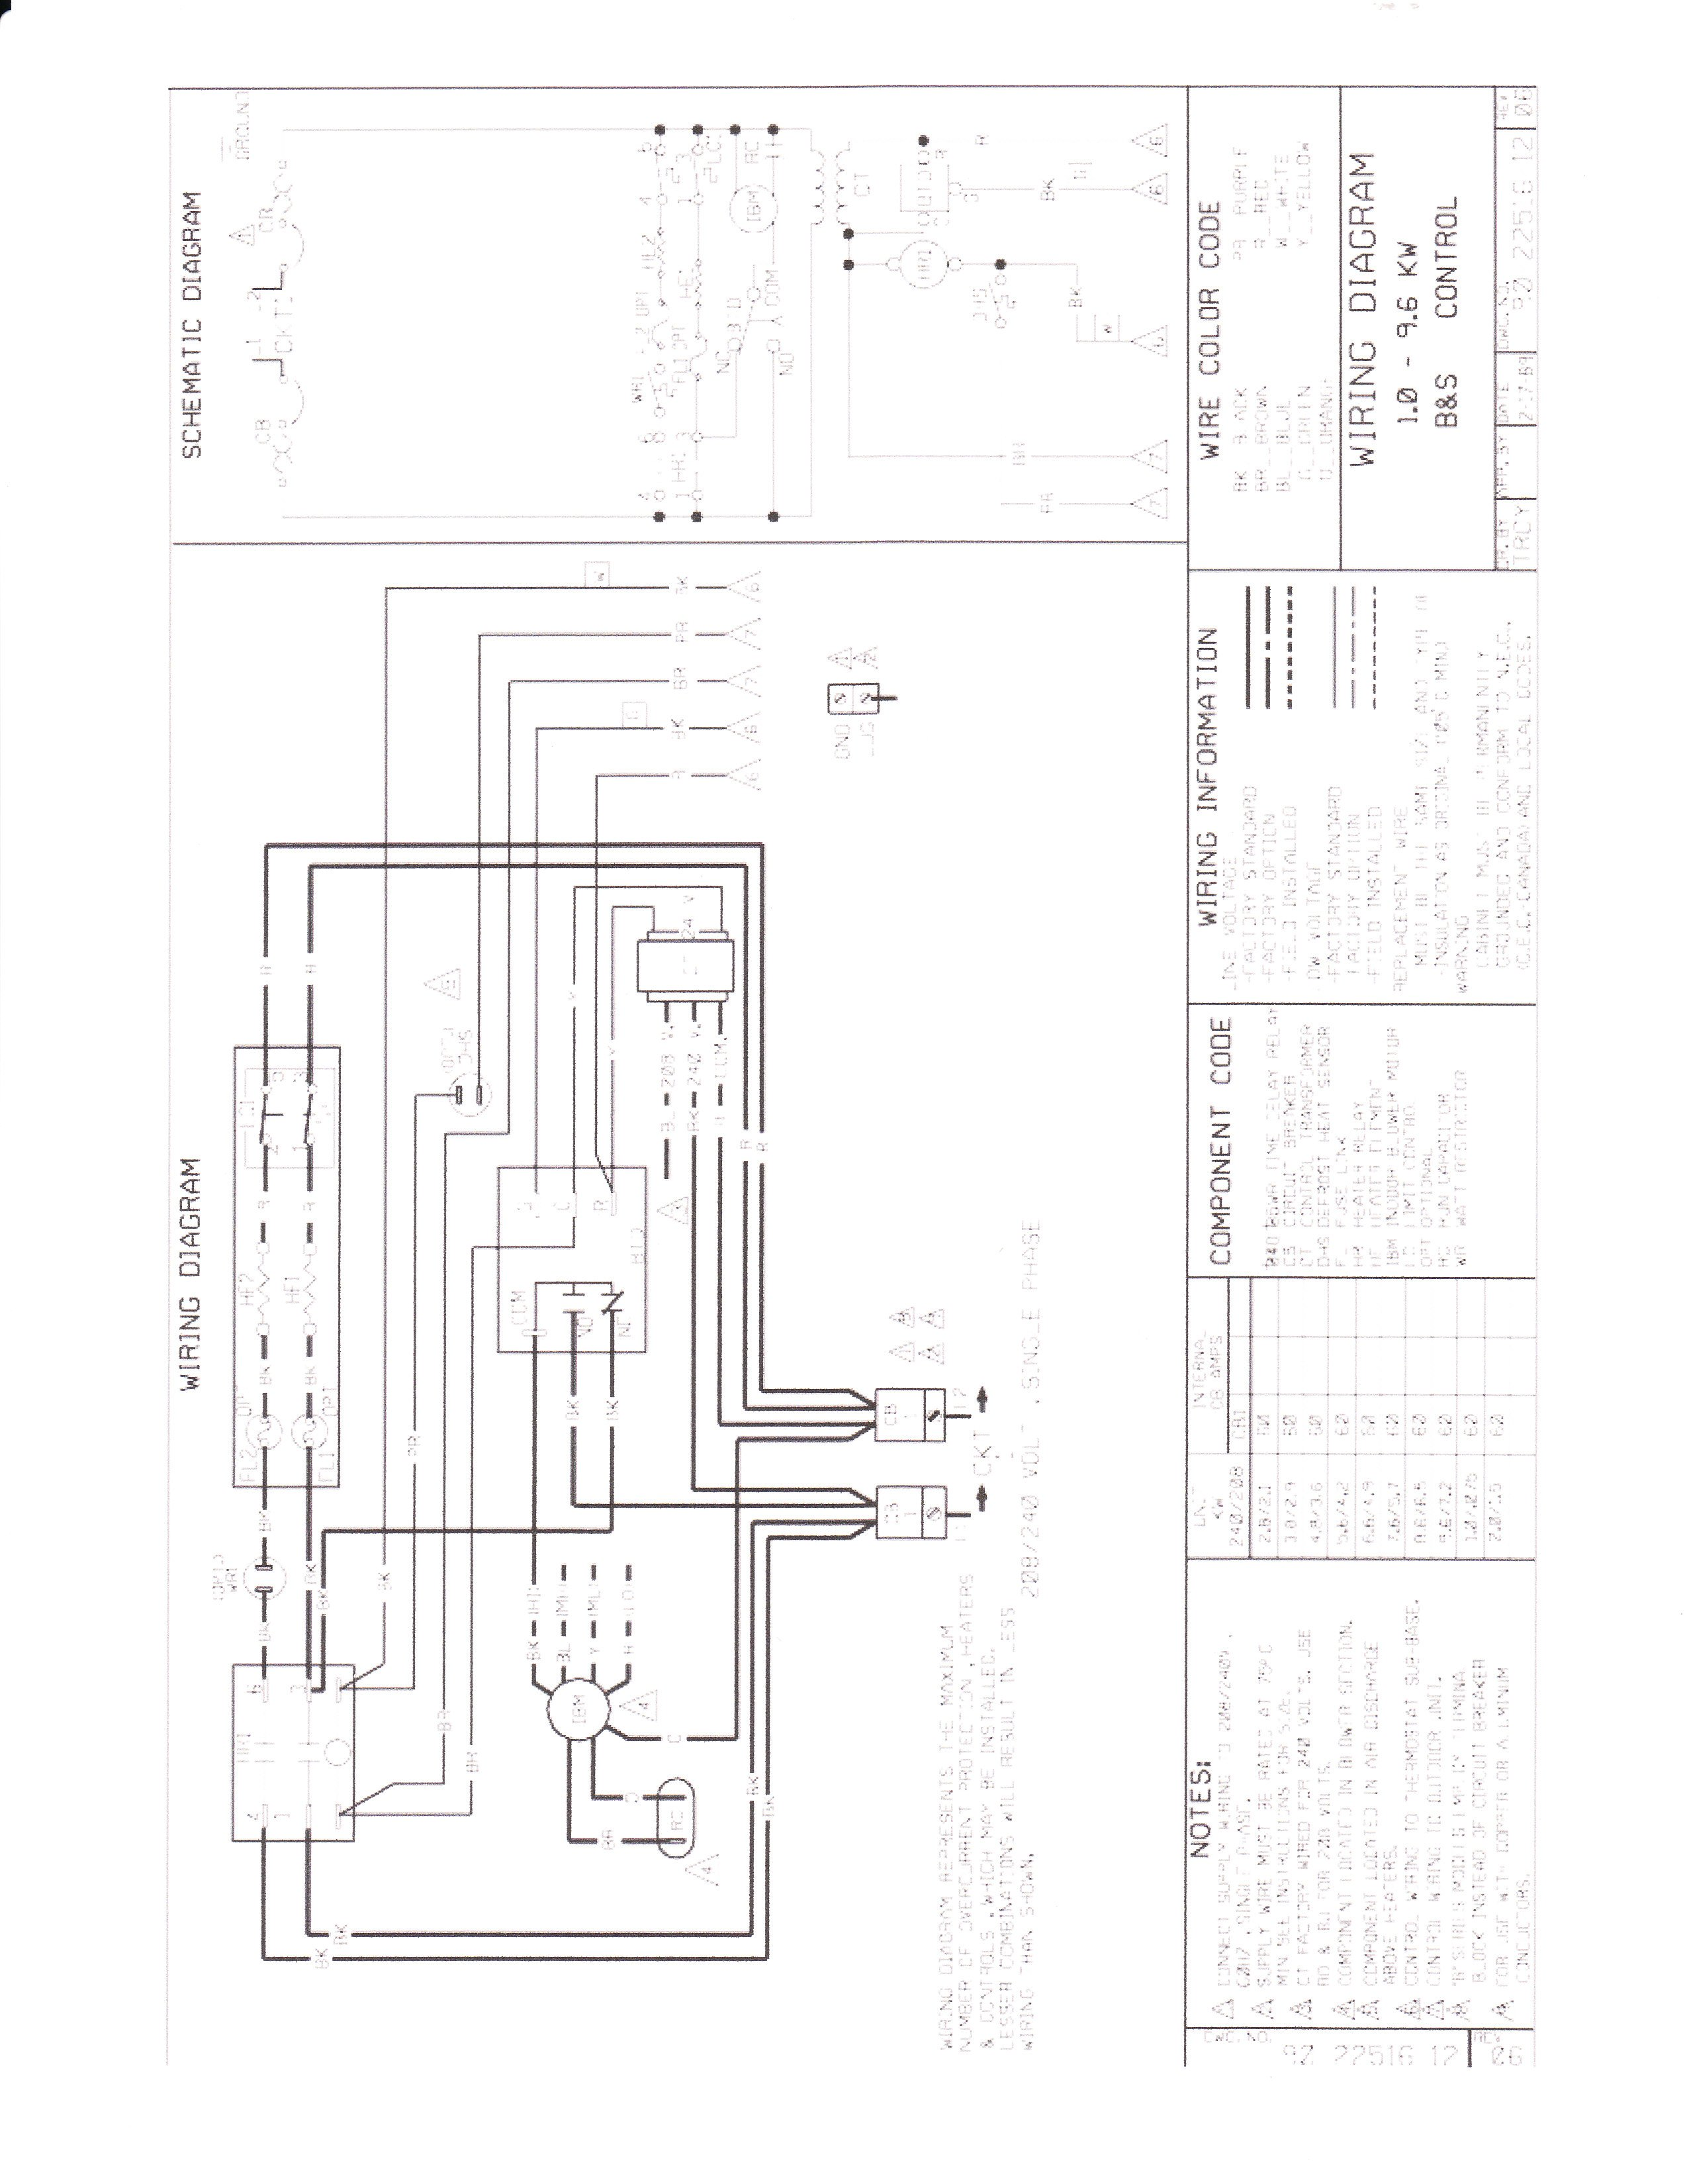 i have a rheem rhqa-1005 bhs furnace. is this a two stage ... old rheem wiring diagrams old carrier wiring diagrams #5